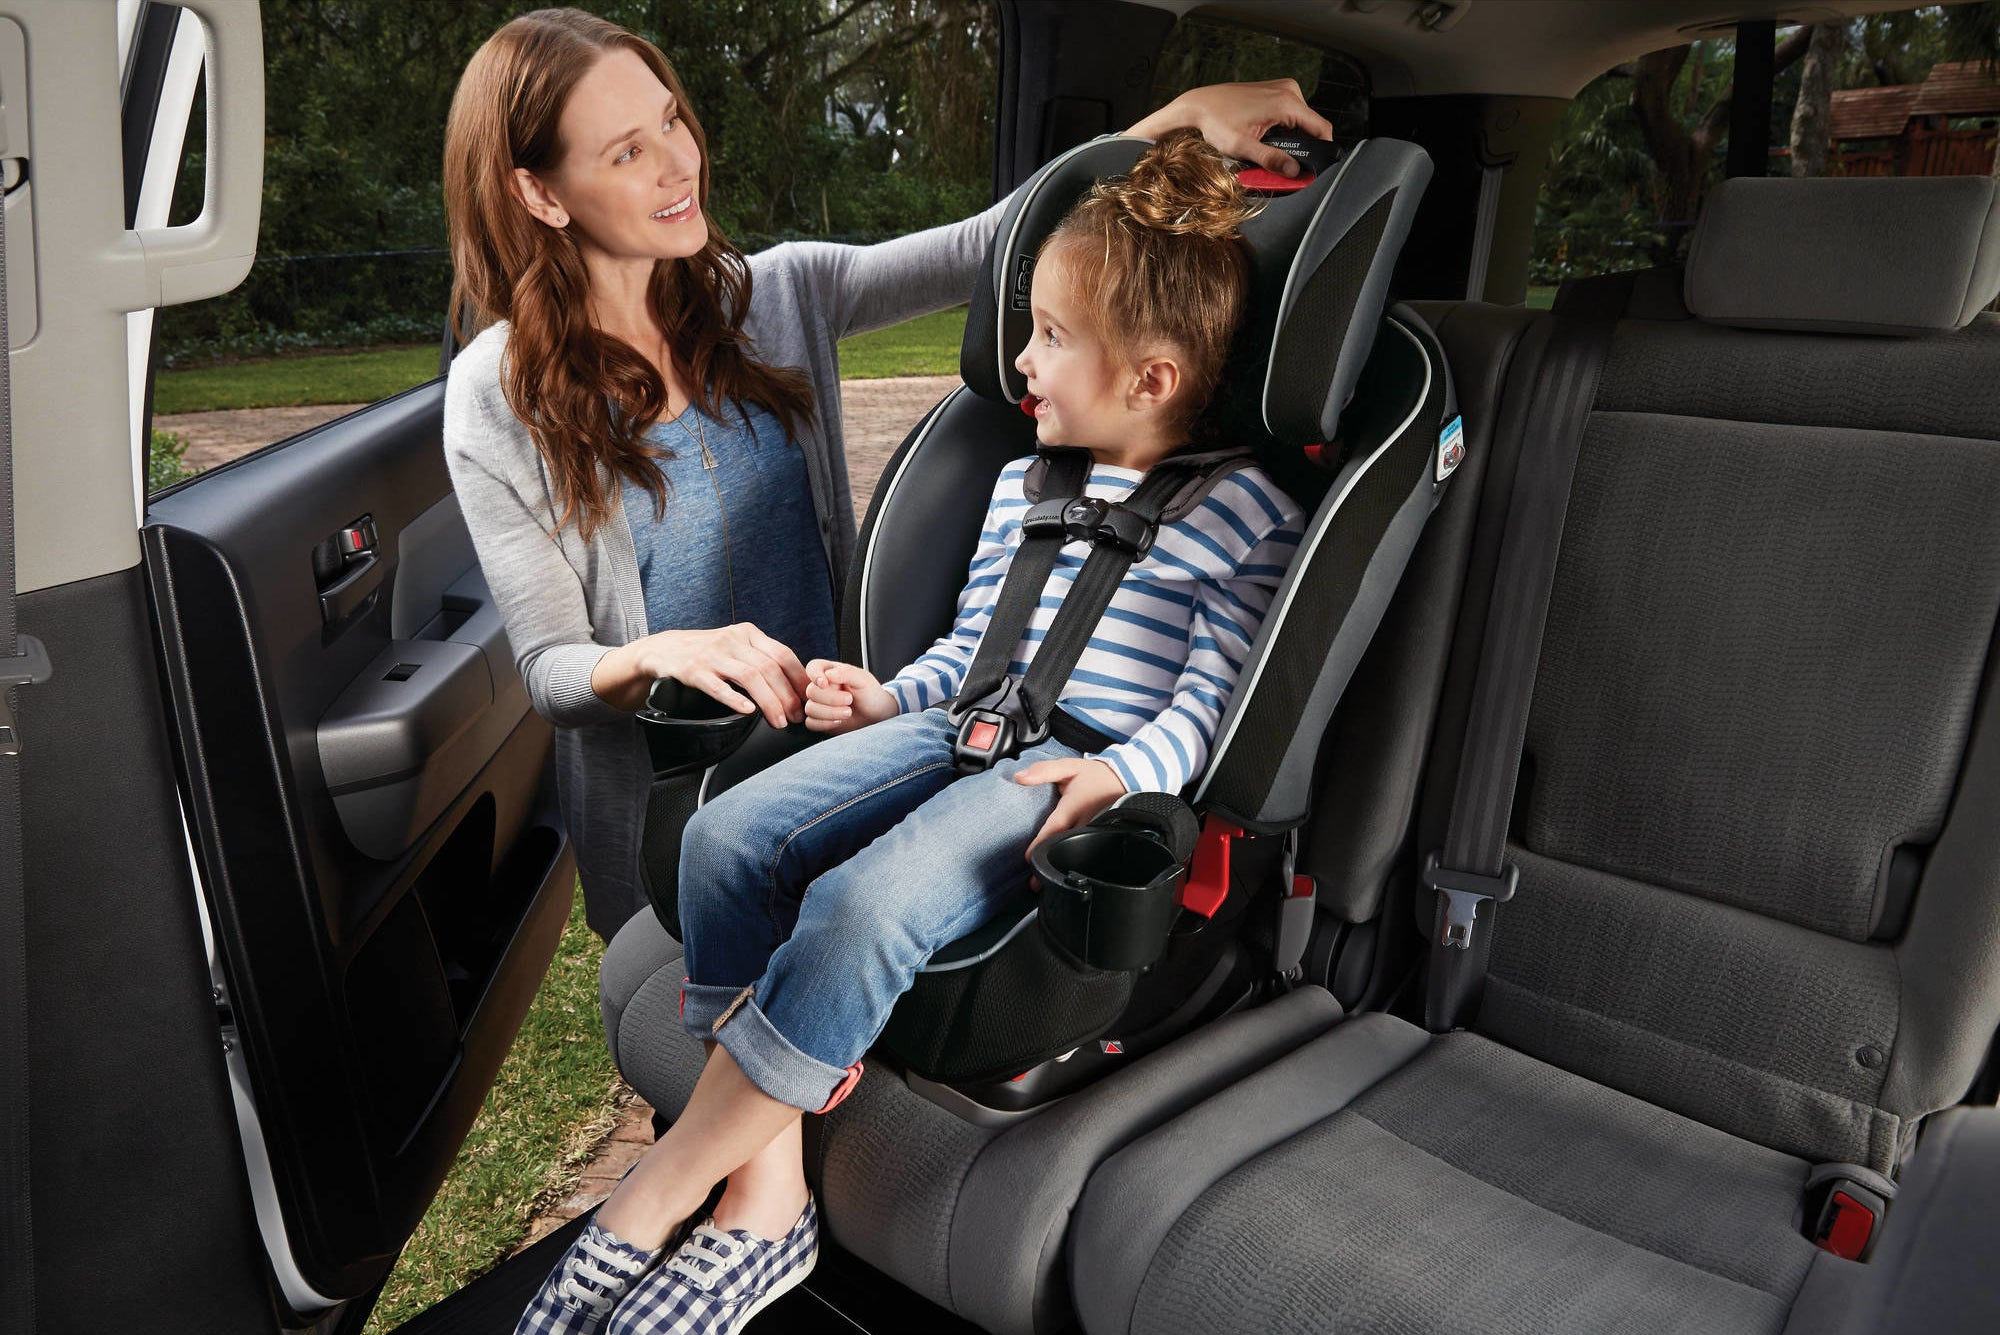 parent adjusting a car seat with a child in it